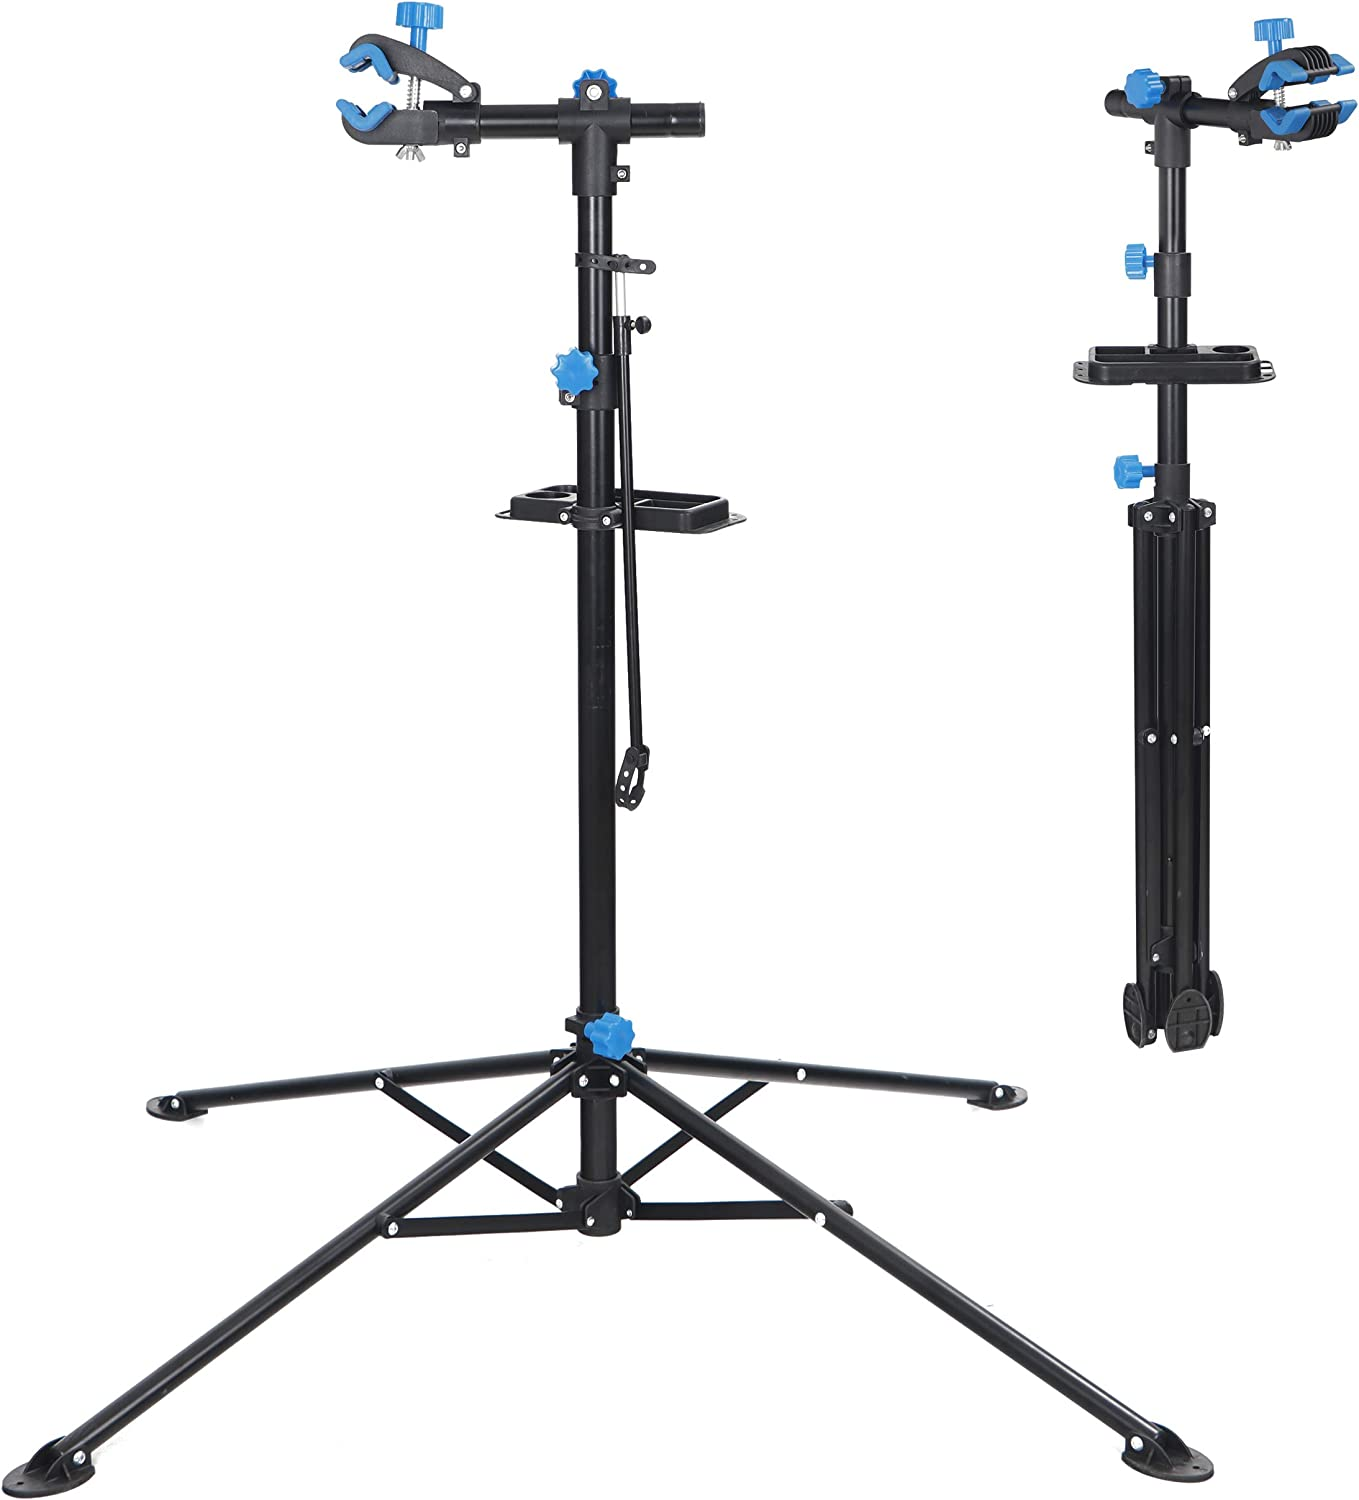 Adjustable Bicycle Maintenance Repair Stand Mechanic Workstand Rack+MagneticTray